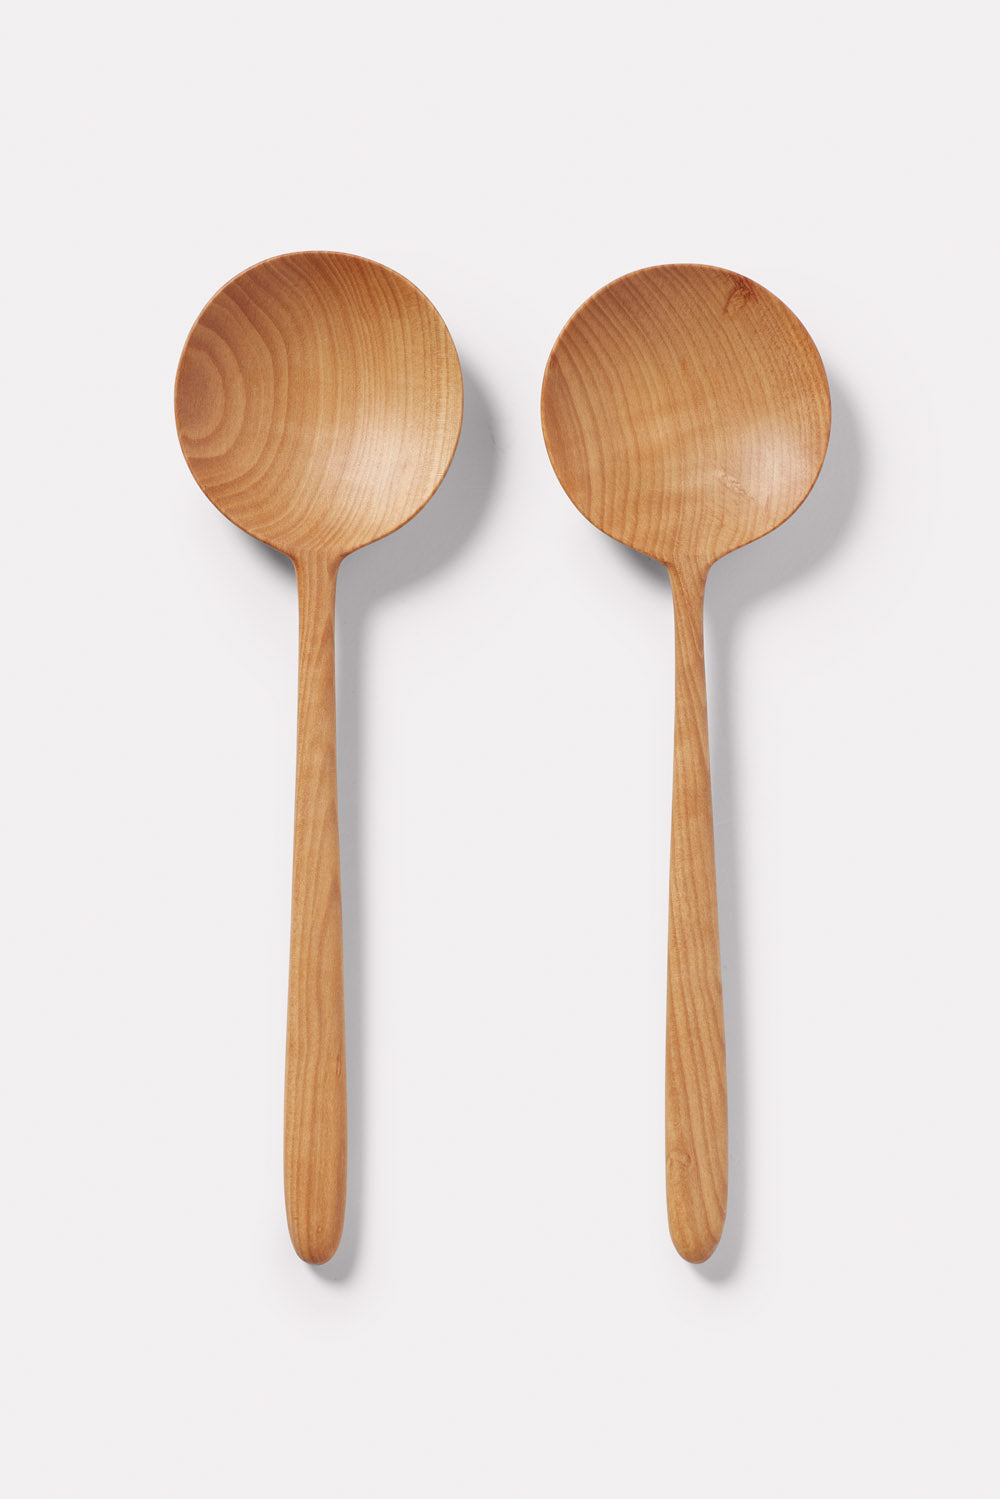 Wooden Salad Server - Pear